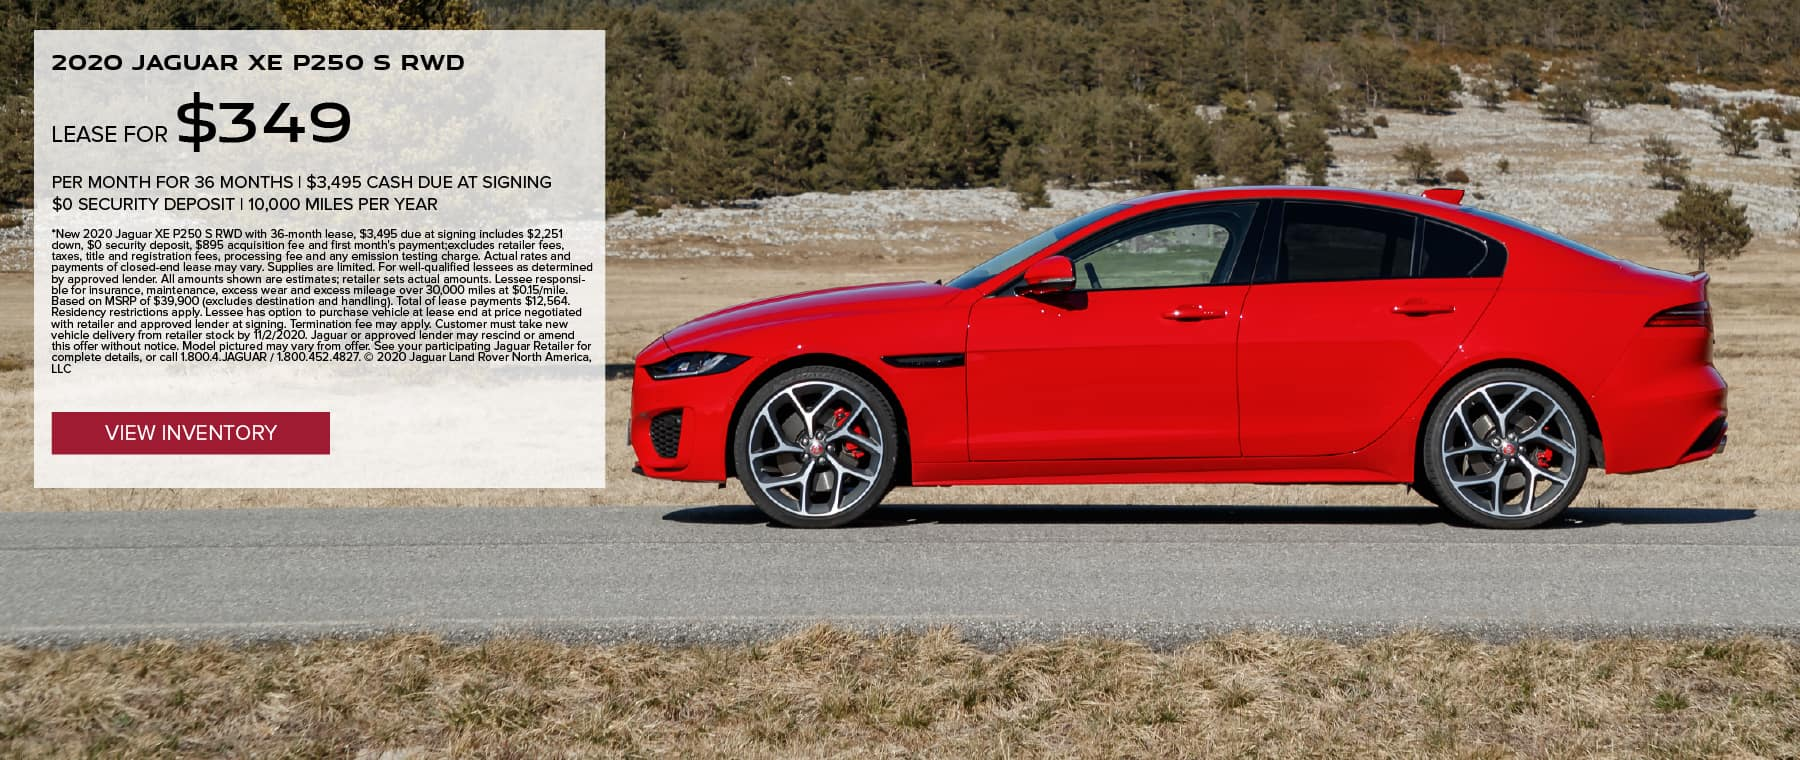 2020 JAGUAR XE P250 S RWD. $349 PER MONTH. 36 MONTH LEASE TERM WITH $3,495 DUE AT SIGNING. $0 SECURITY DEPOSIT. 10,000 MILES PER YEAR. EXCLUDES RETAILER FEES, TAXES, TITLE AND REGISTRATION FEES, PROCESSING FEE AND ANY EMISSION TESTING CHARGE. OFFER ENDS 11/2/2020. VIEW INVENTORY. RED JAGUAR XE DRIVING THROUGH COUNTRYSIDE.